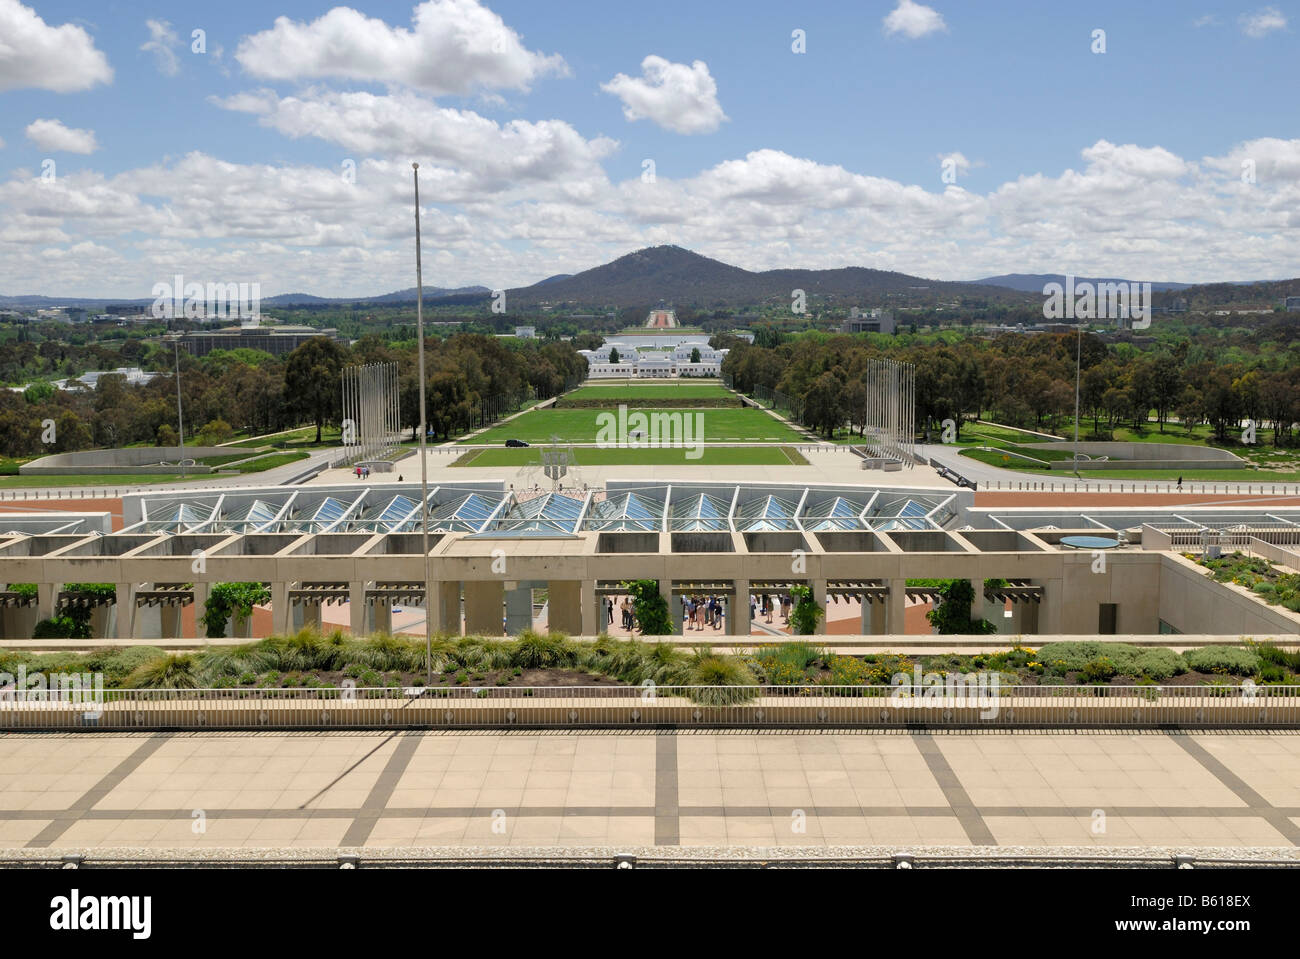 View From The Roof Terrace Of The New House Of Parliament On Mount Stock Photo - Alamy